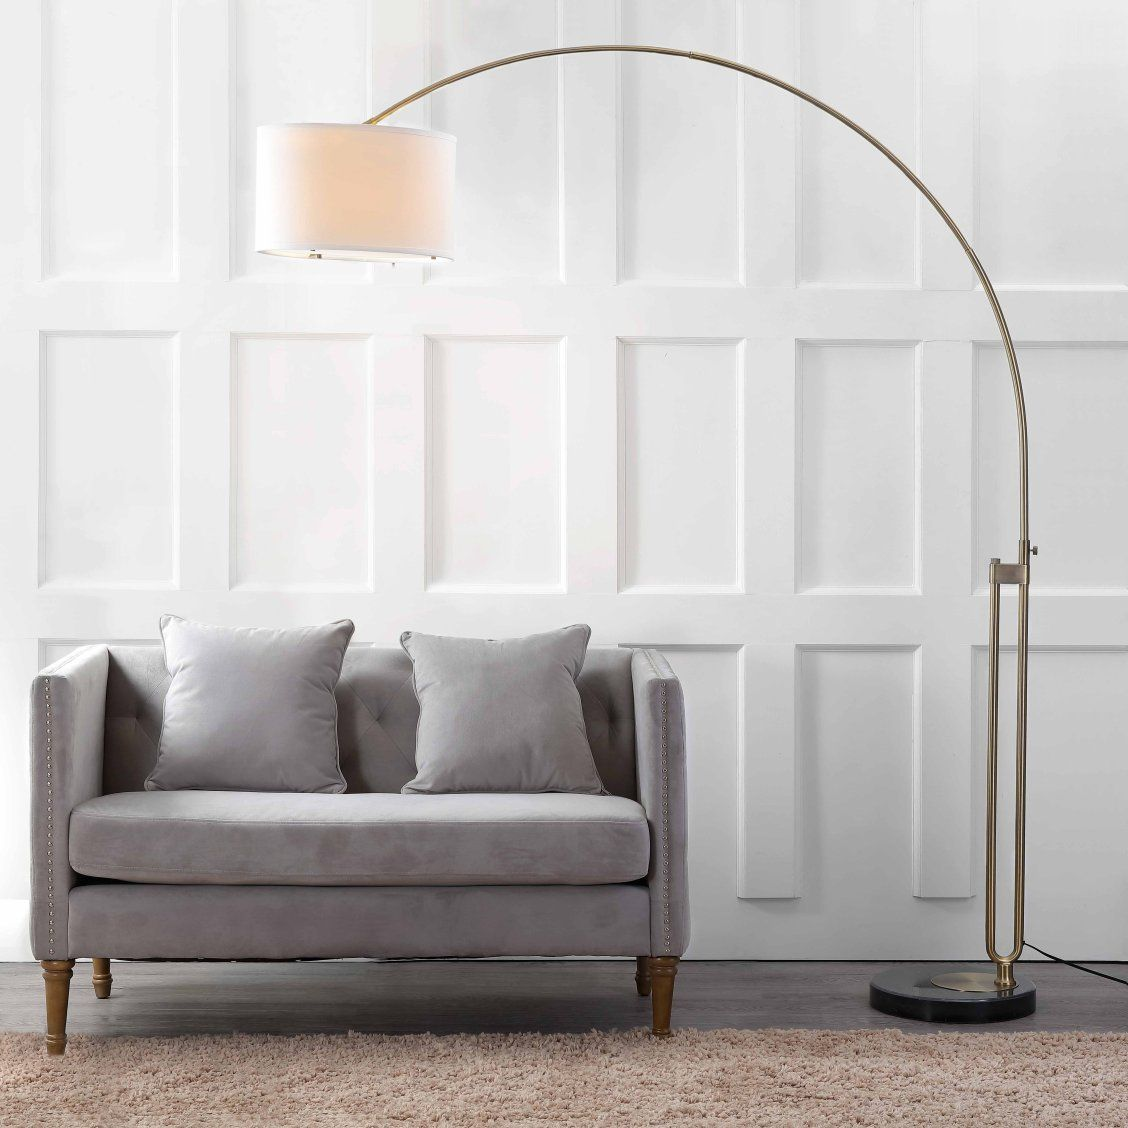 Eloquent In Its Expression Of Pure Geometry This Dramatic Arc Floor Lamp Moves With Ease From Tr Arc Floor Lamps Modern Arc Floor Lamp Floor Lamps Living Room #pole #lamps #for #living #room